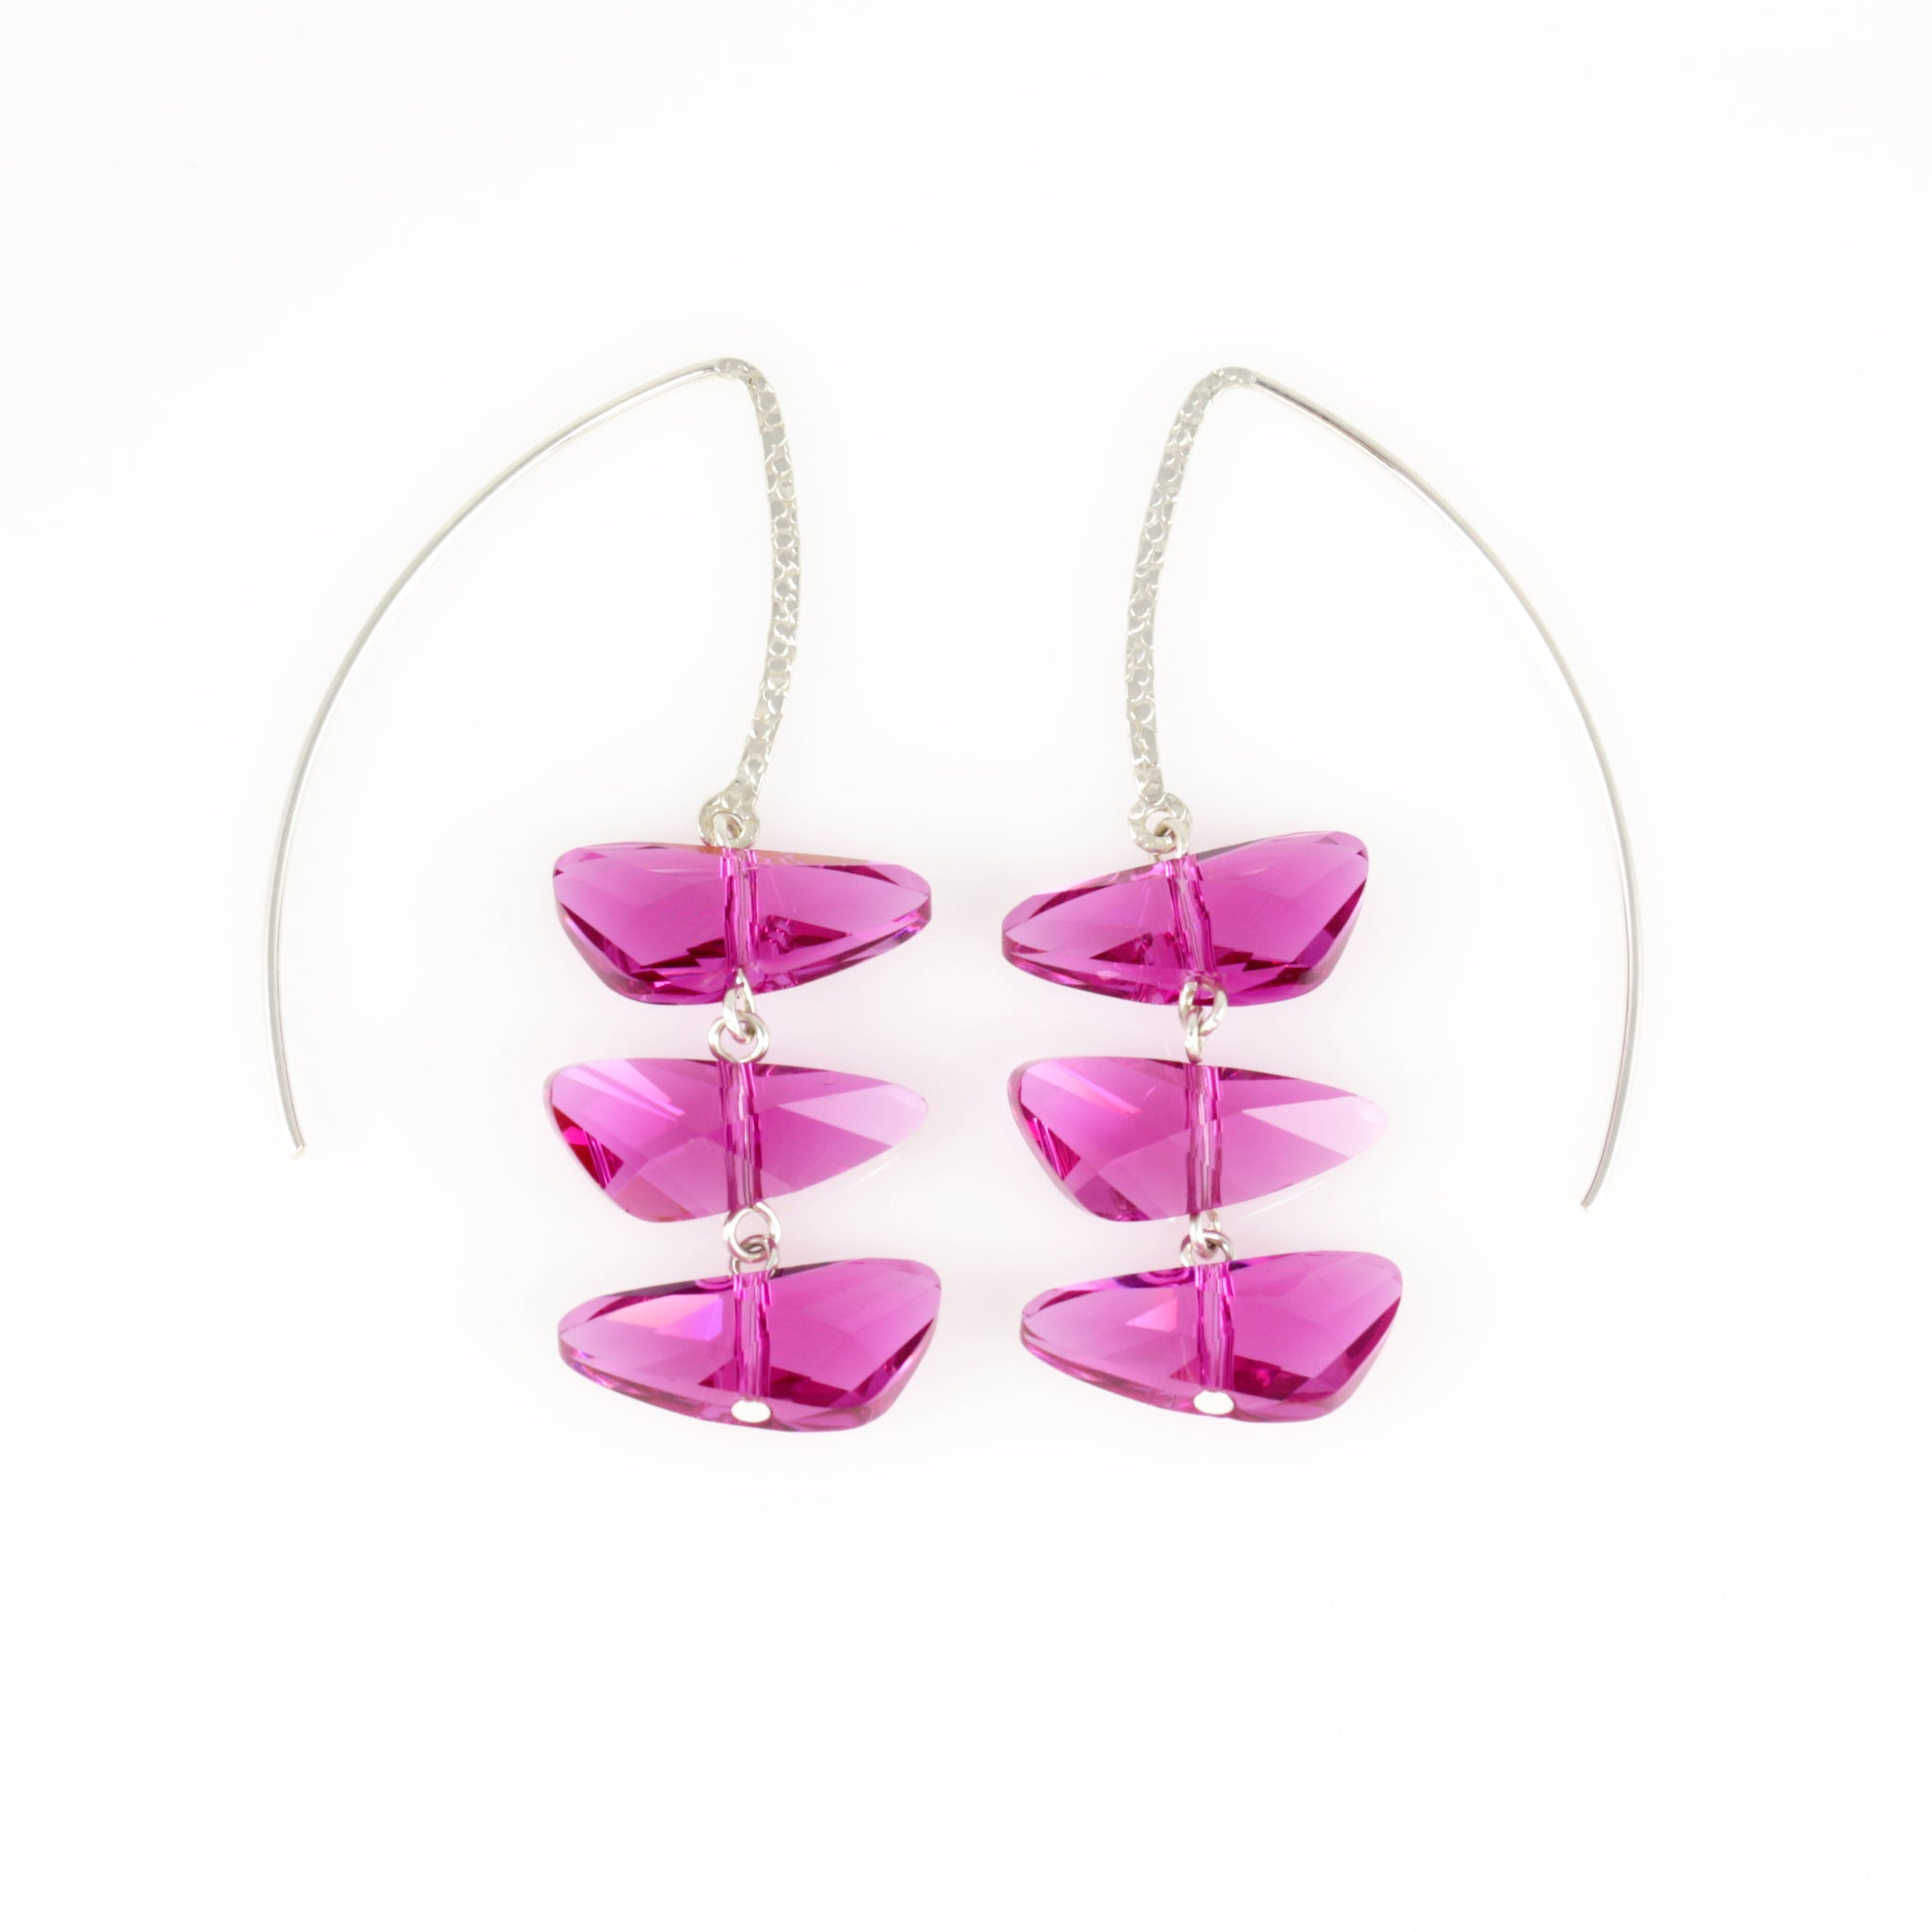 Reflections Earrings in Fuchsia